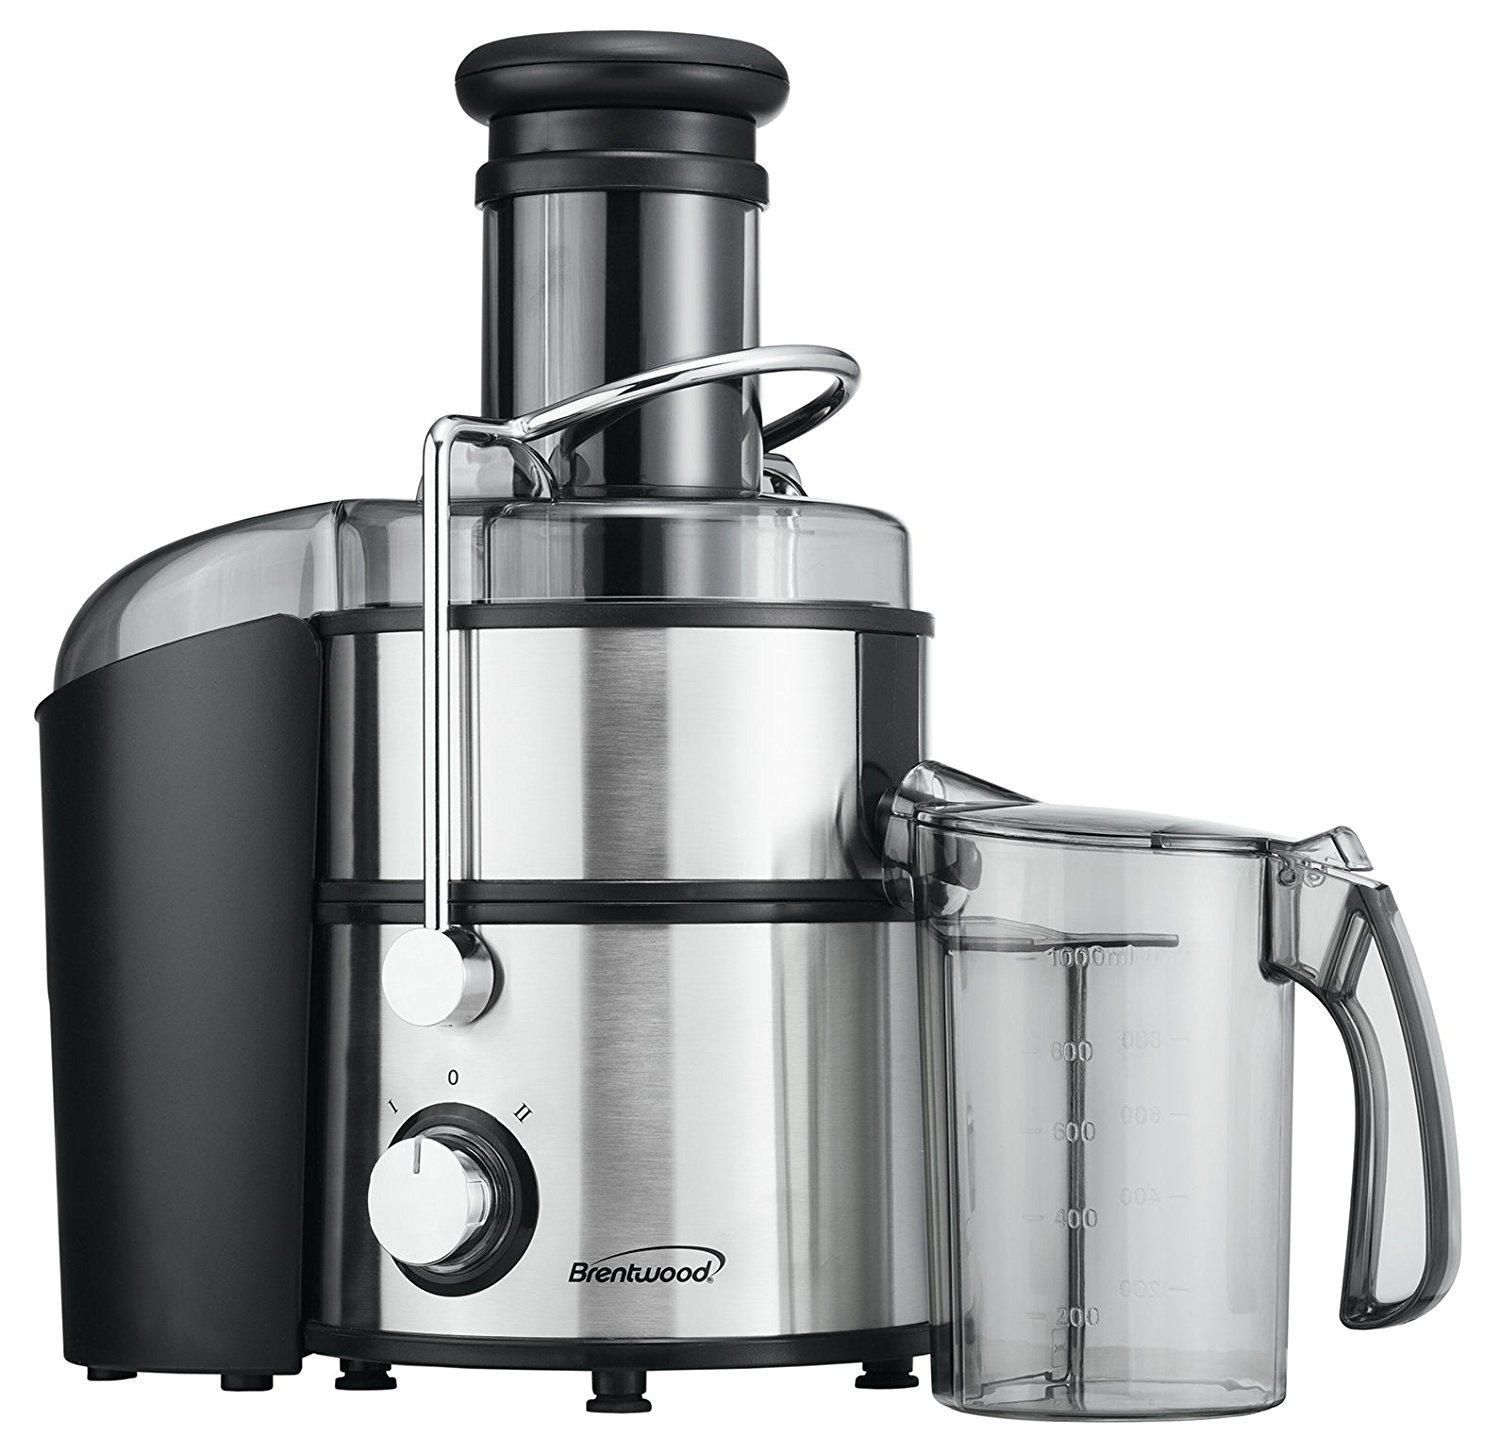 Black and stainless steel Brentwood JC-500 800W juicer - best juicer overall